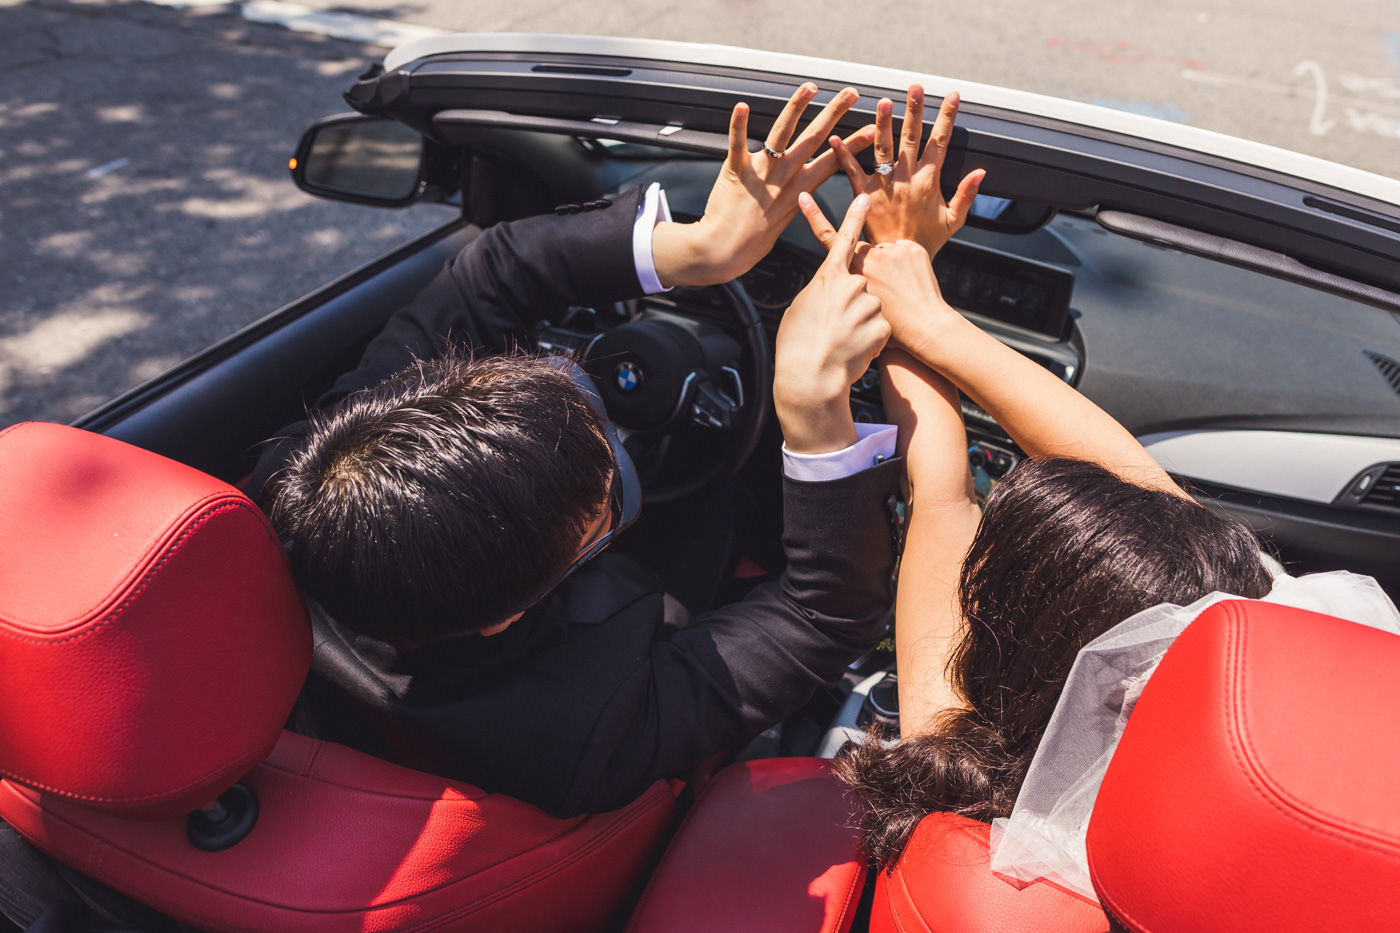 bride-and-groom-showing-off-rings-in-convertible